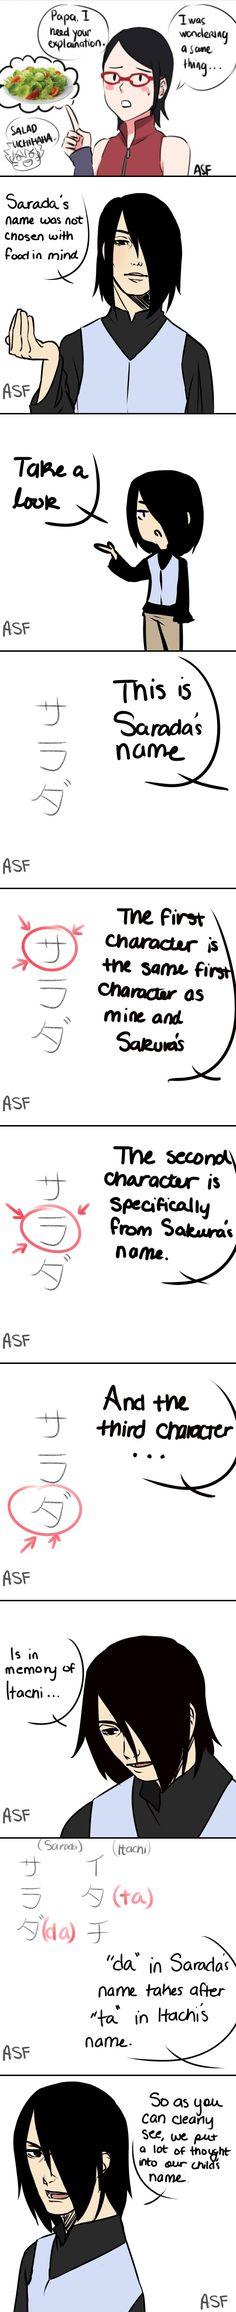 When I first heard it, I could tell Kishimoto chose it because it sounds like both Sasuke and Sakura's names.